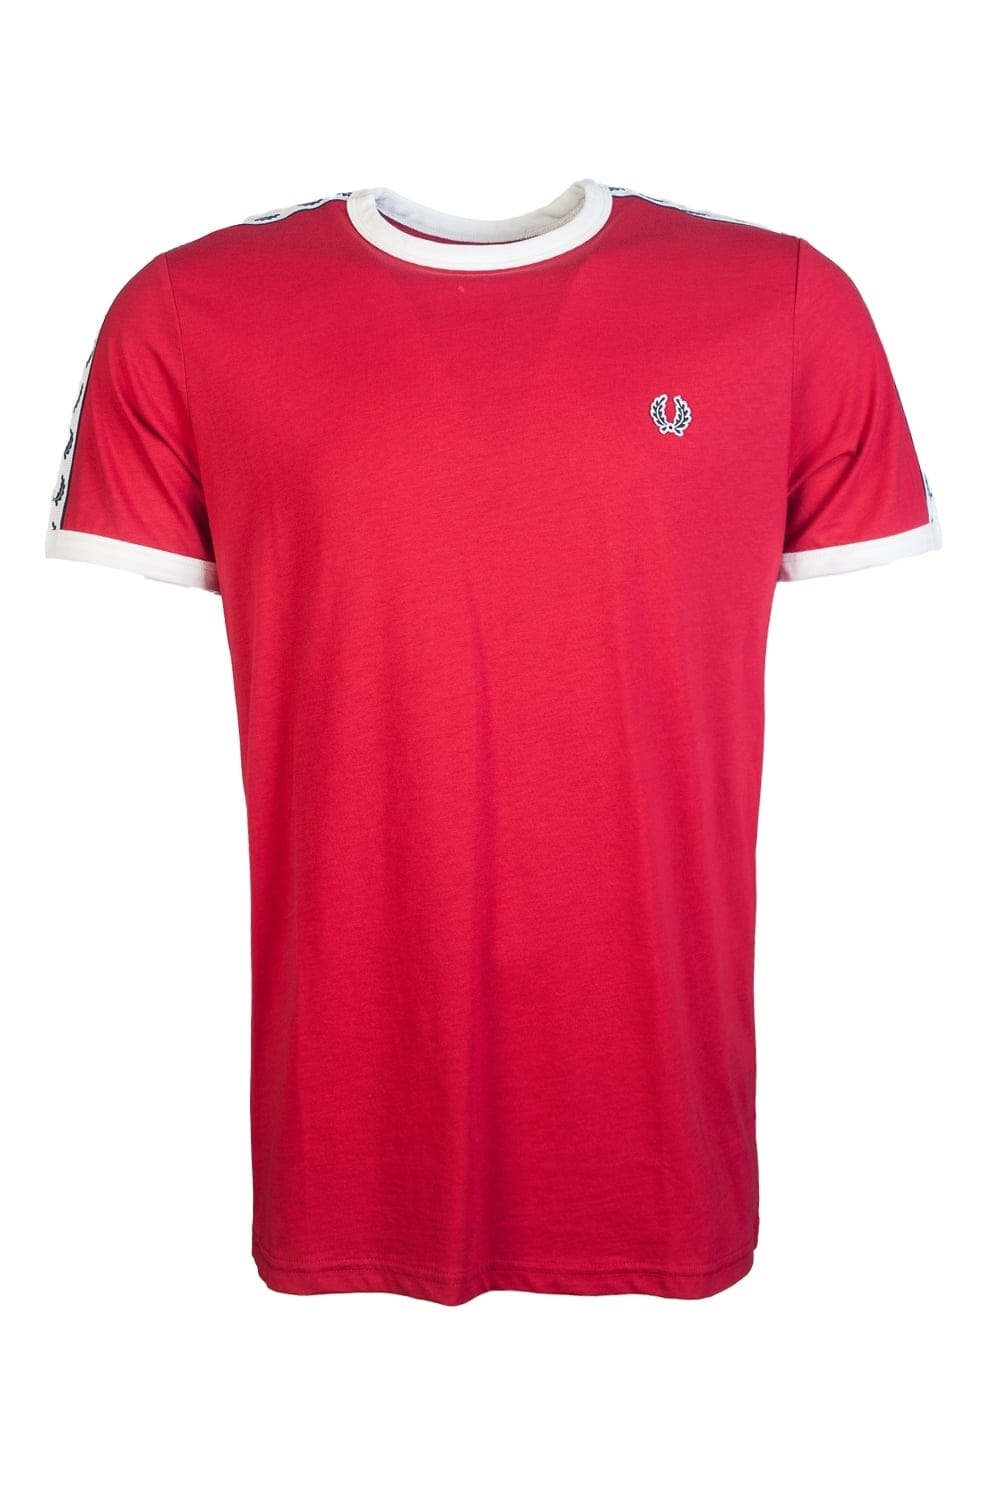 home clothing t shirts fred perry fred perry t shirt m6347 696. Black Bedroom Furniture Sets. Home Design Ideas